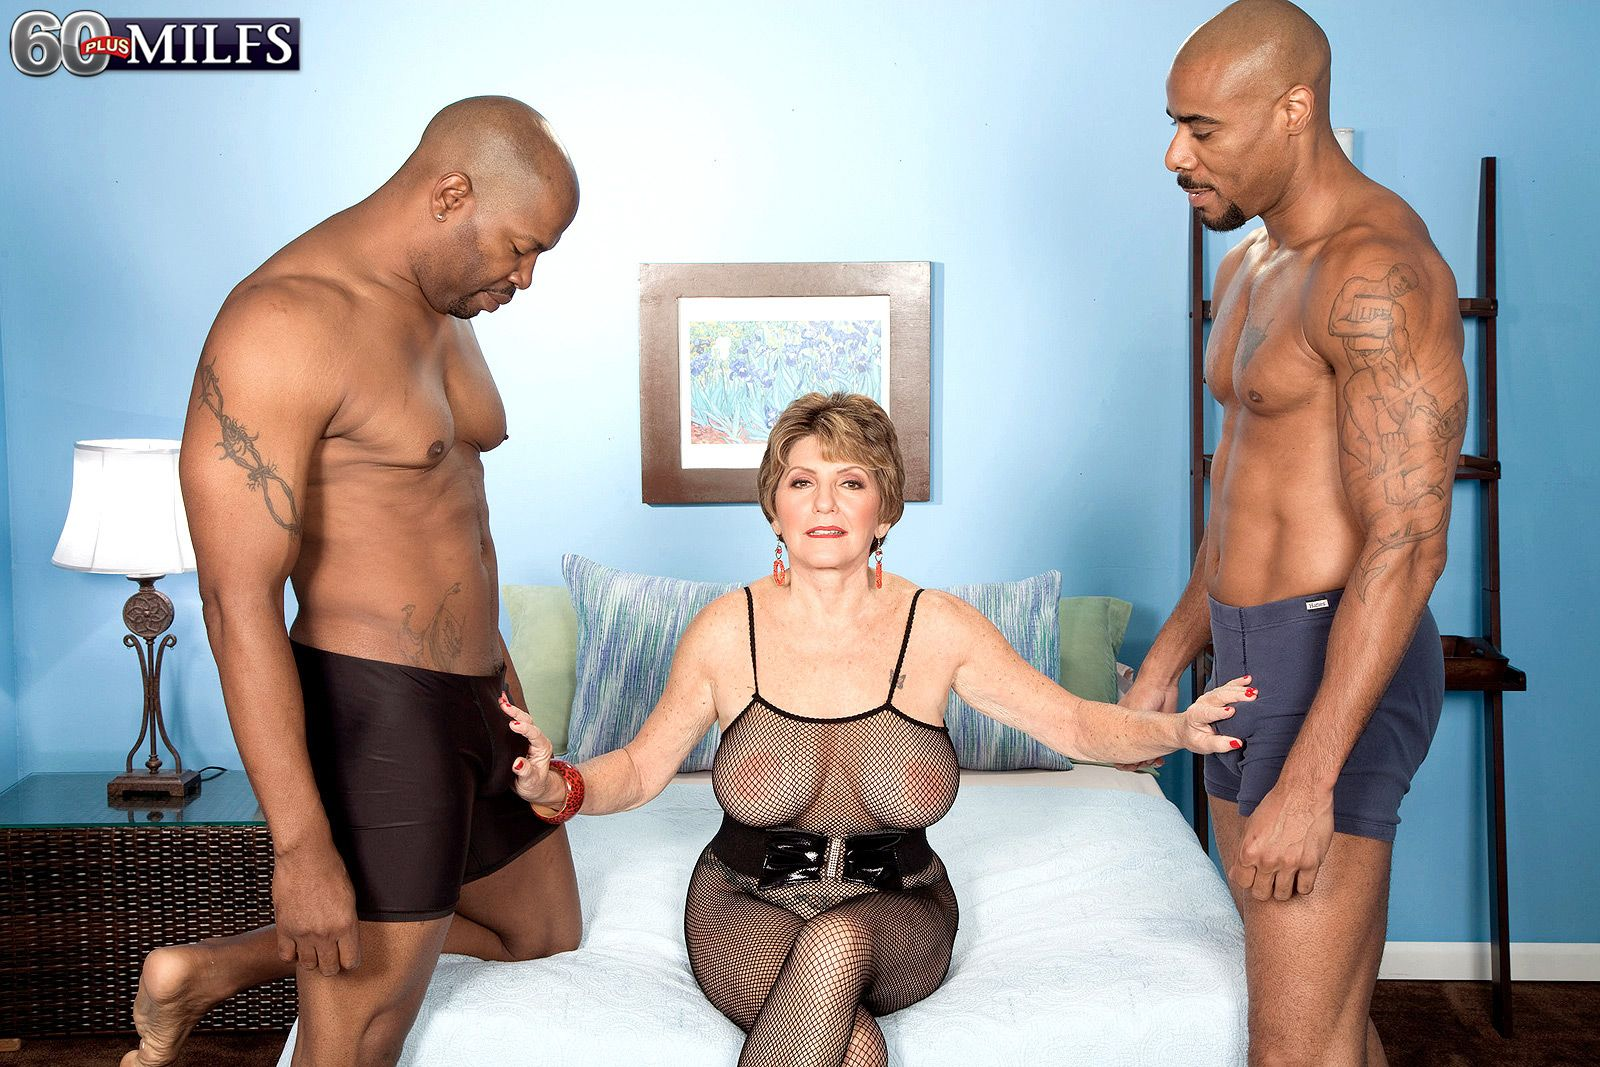 Bea cummins interracial